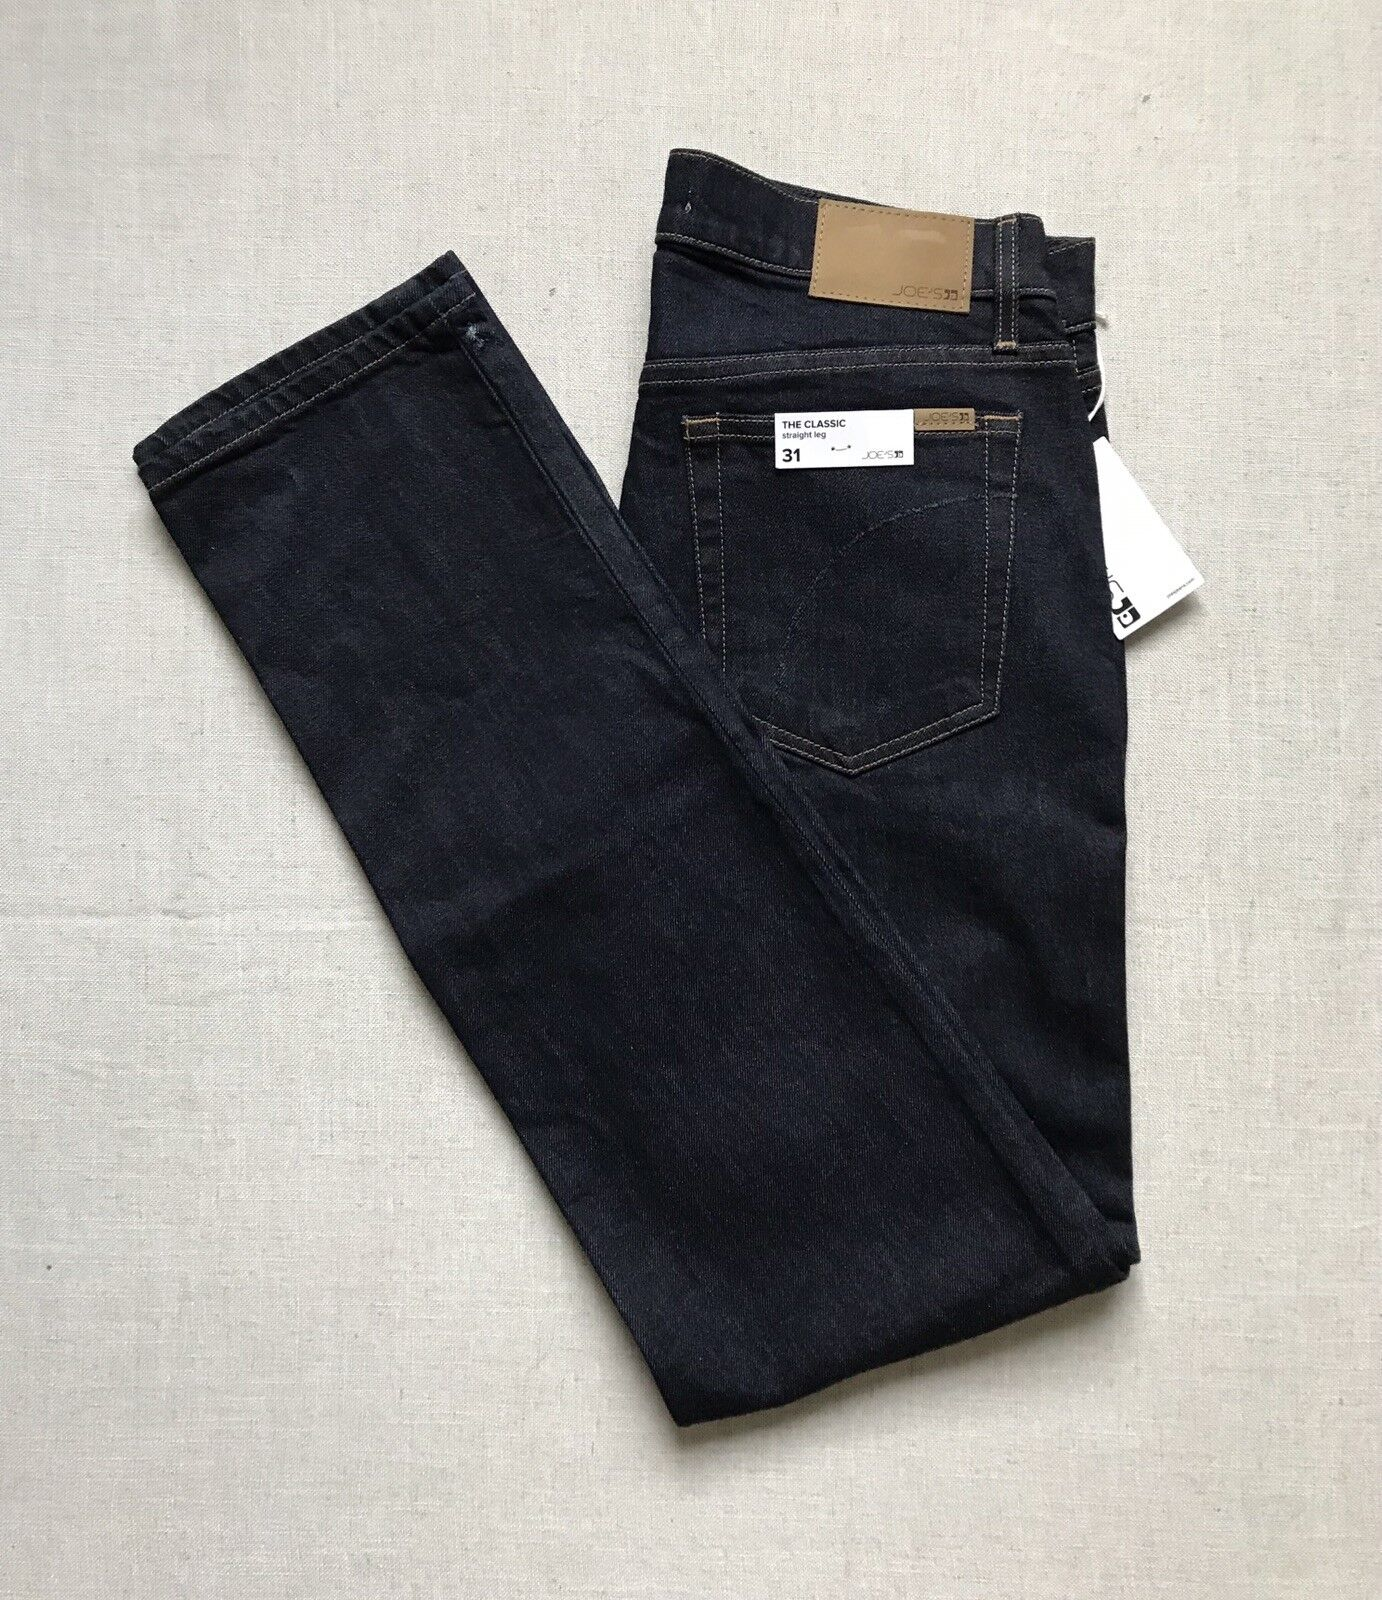 NWT MENS Size 31X35 JOES THE CLASSIC STRAIGHT LEG STRETCH DENIM JEANS